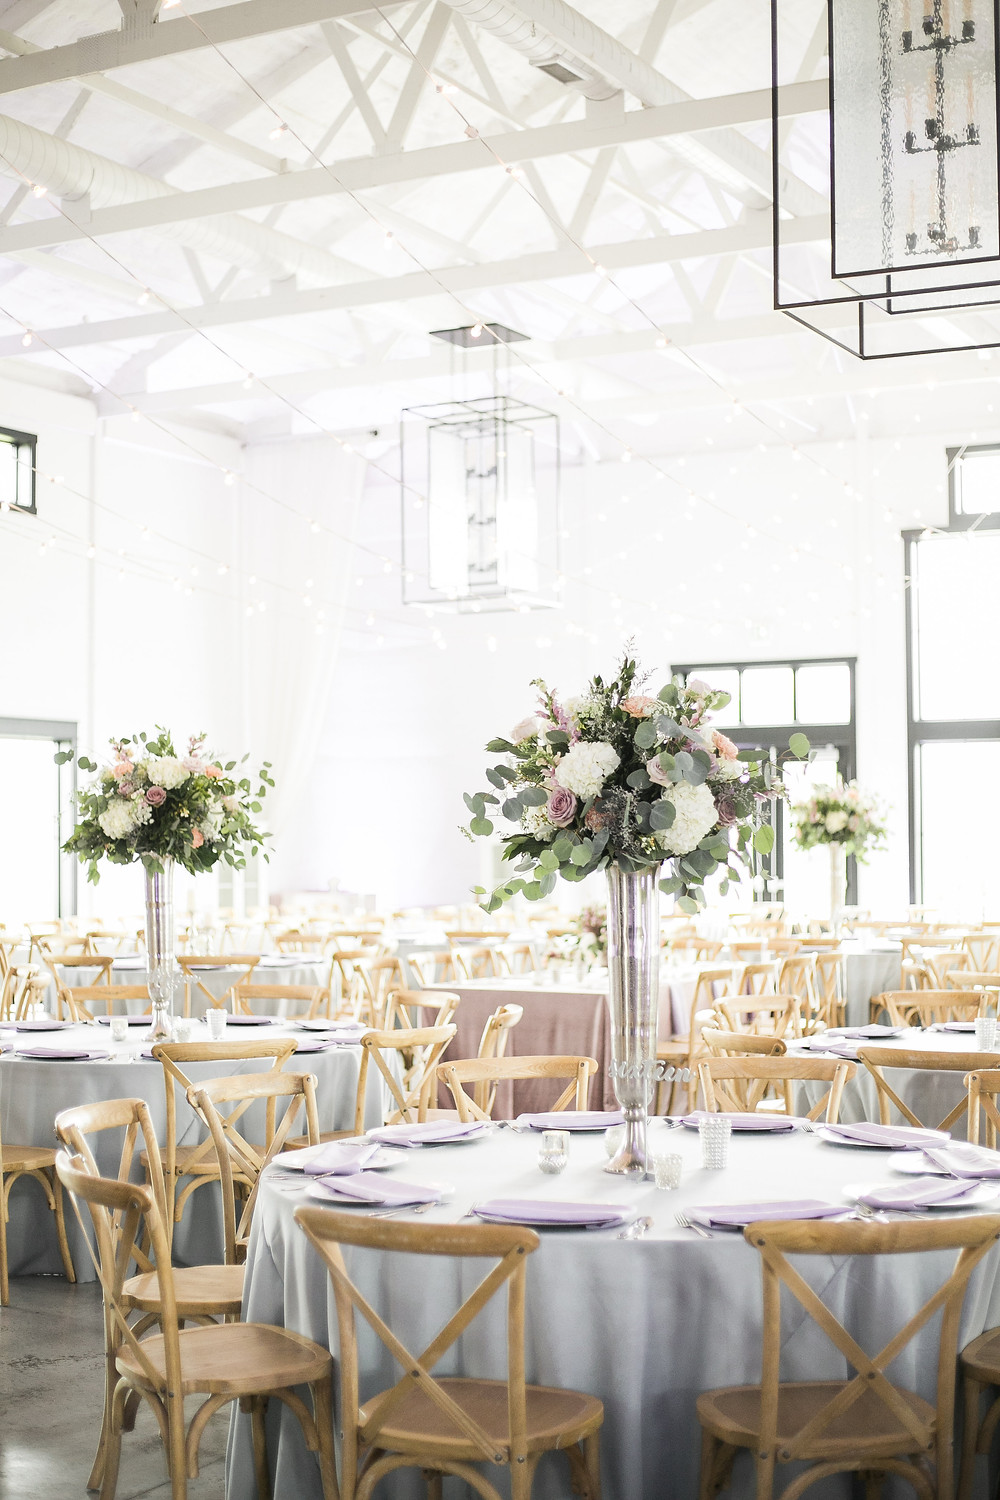 tall flower centerpieces in silver vases by studio bloom iowa with white hydrangea, mauve roses, snapdragons, and eucalyptus